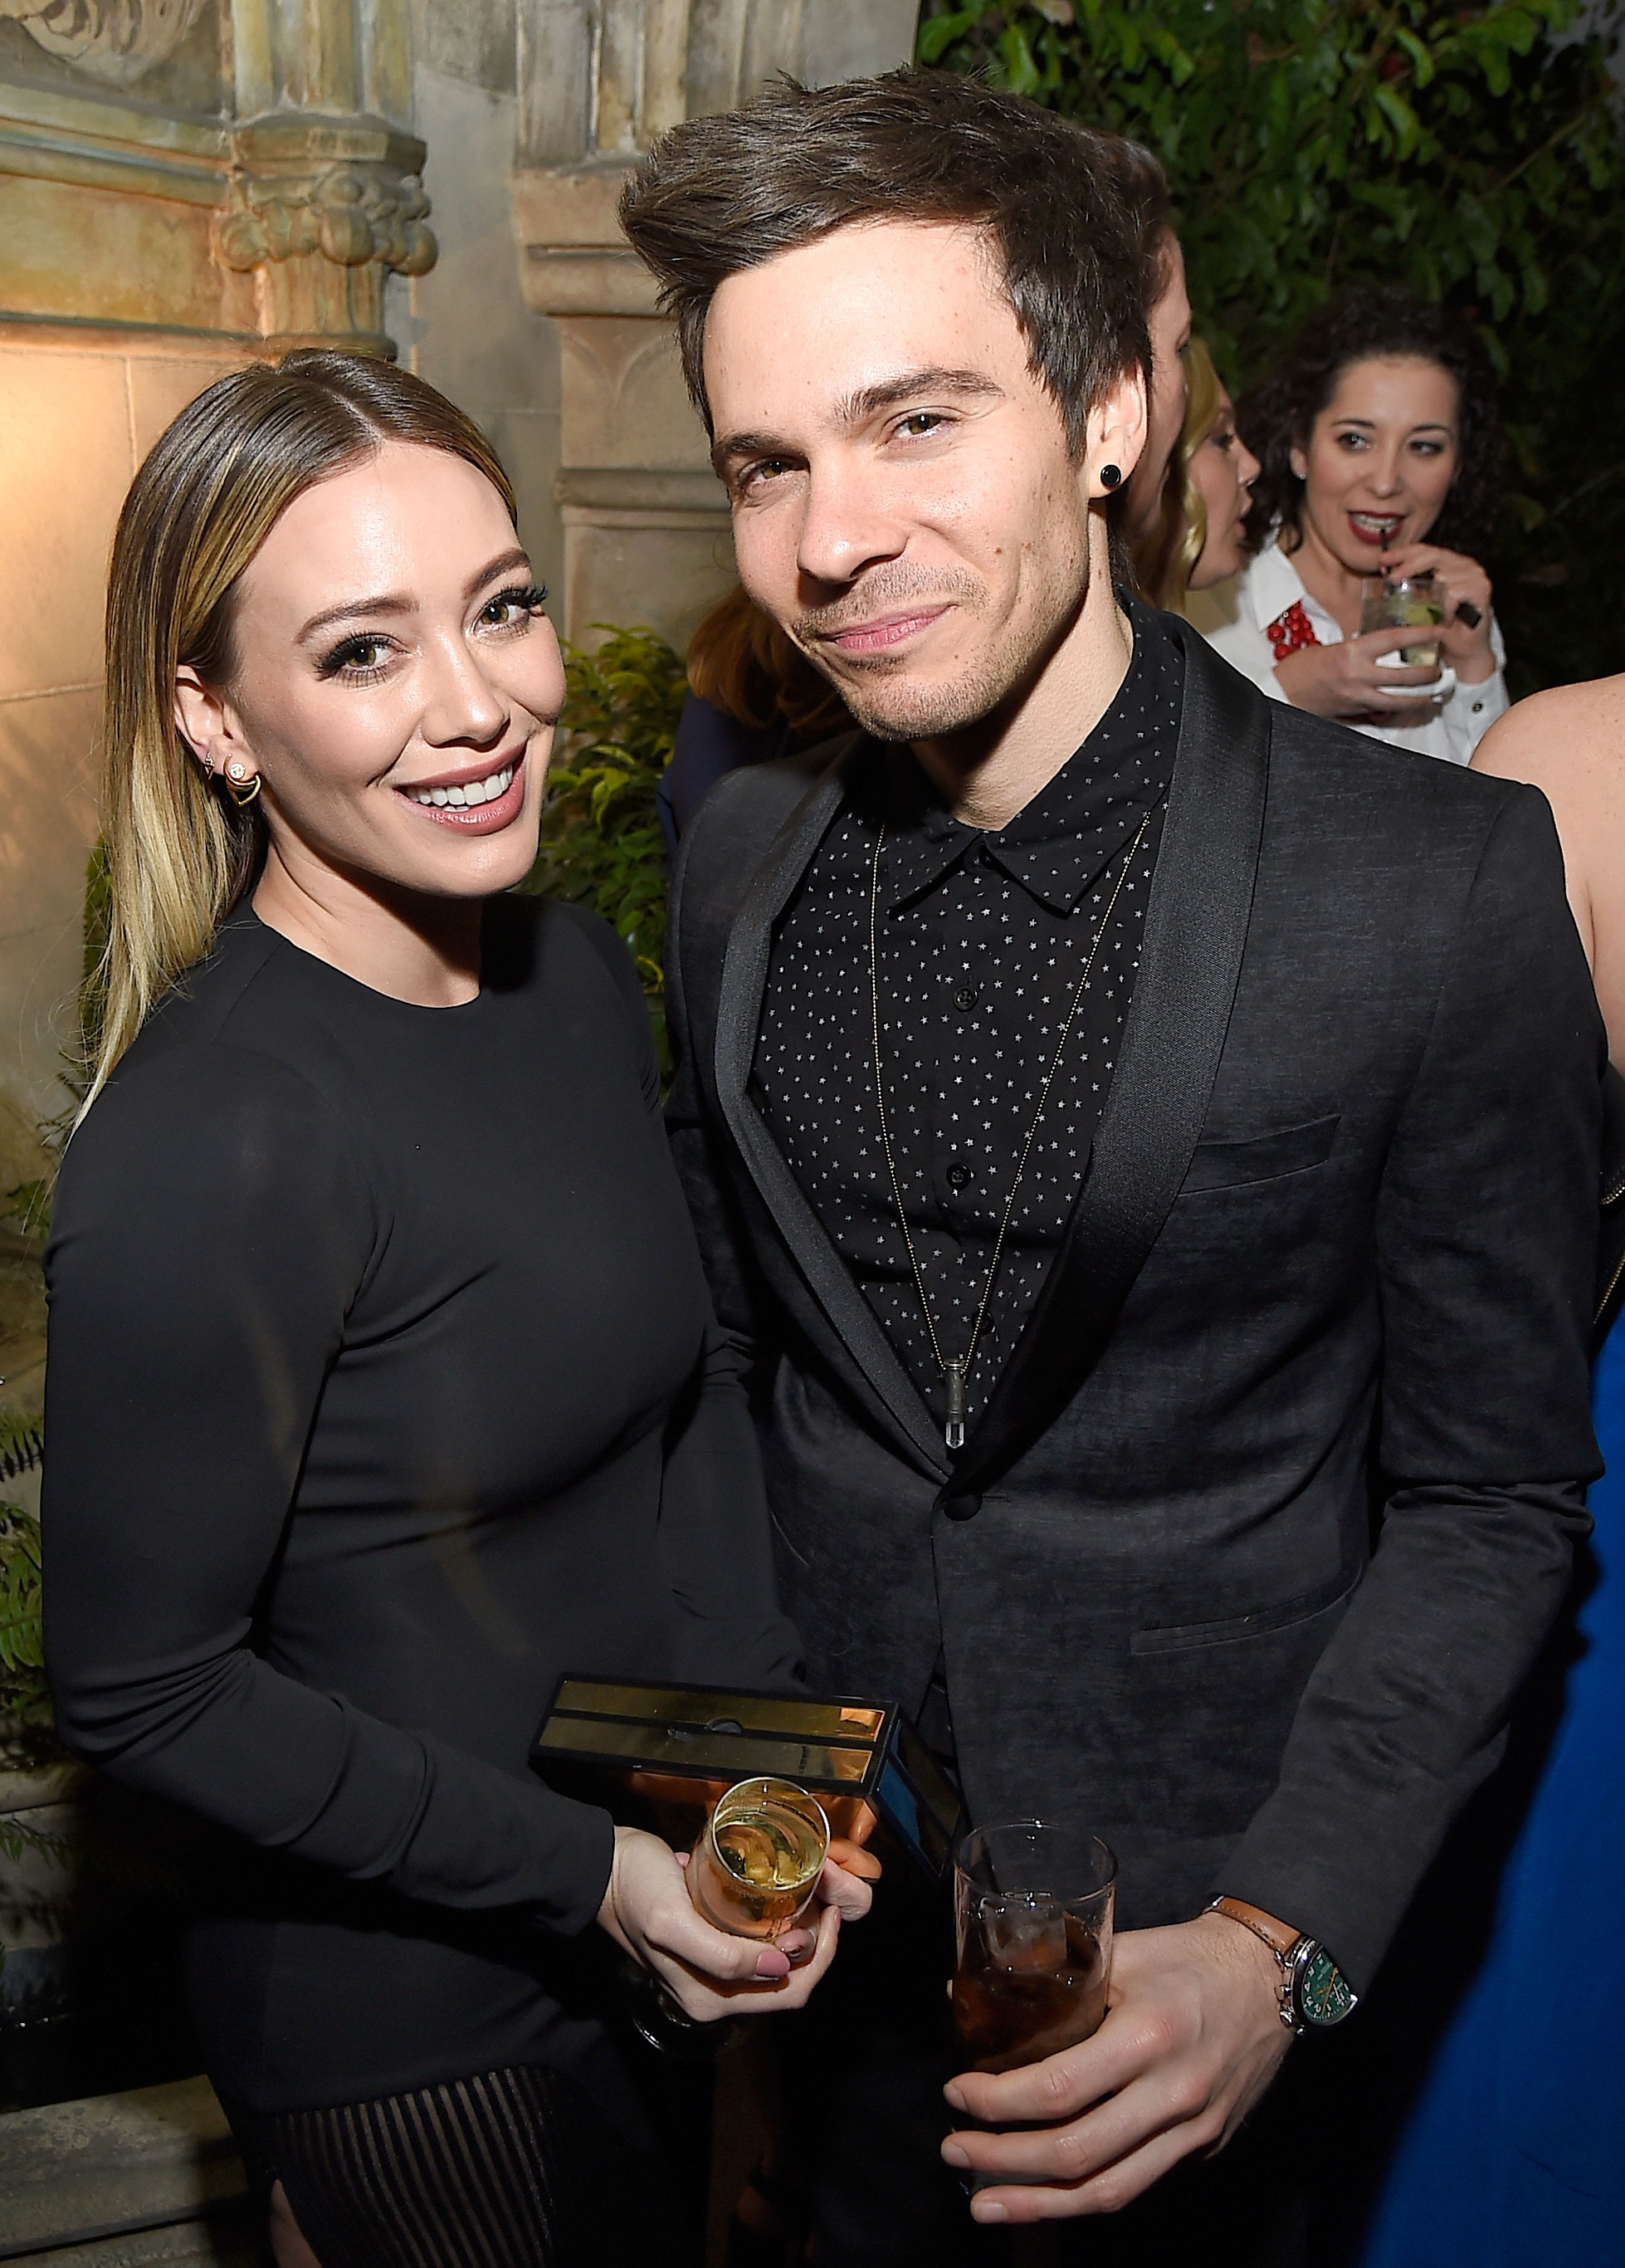 Hilary Duff Matthew Koma - The Younger actress and Koma made their red carpet debut at a pre-SAG Awards party.